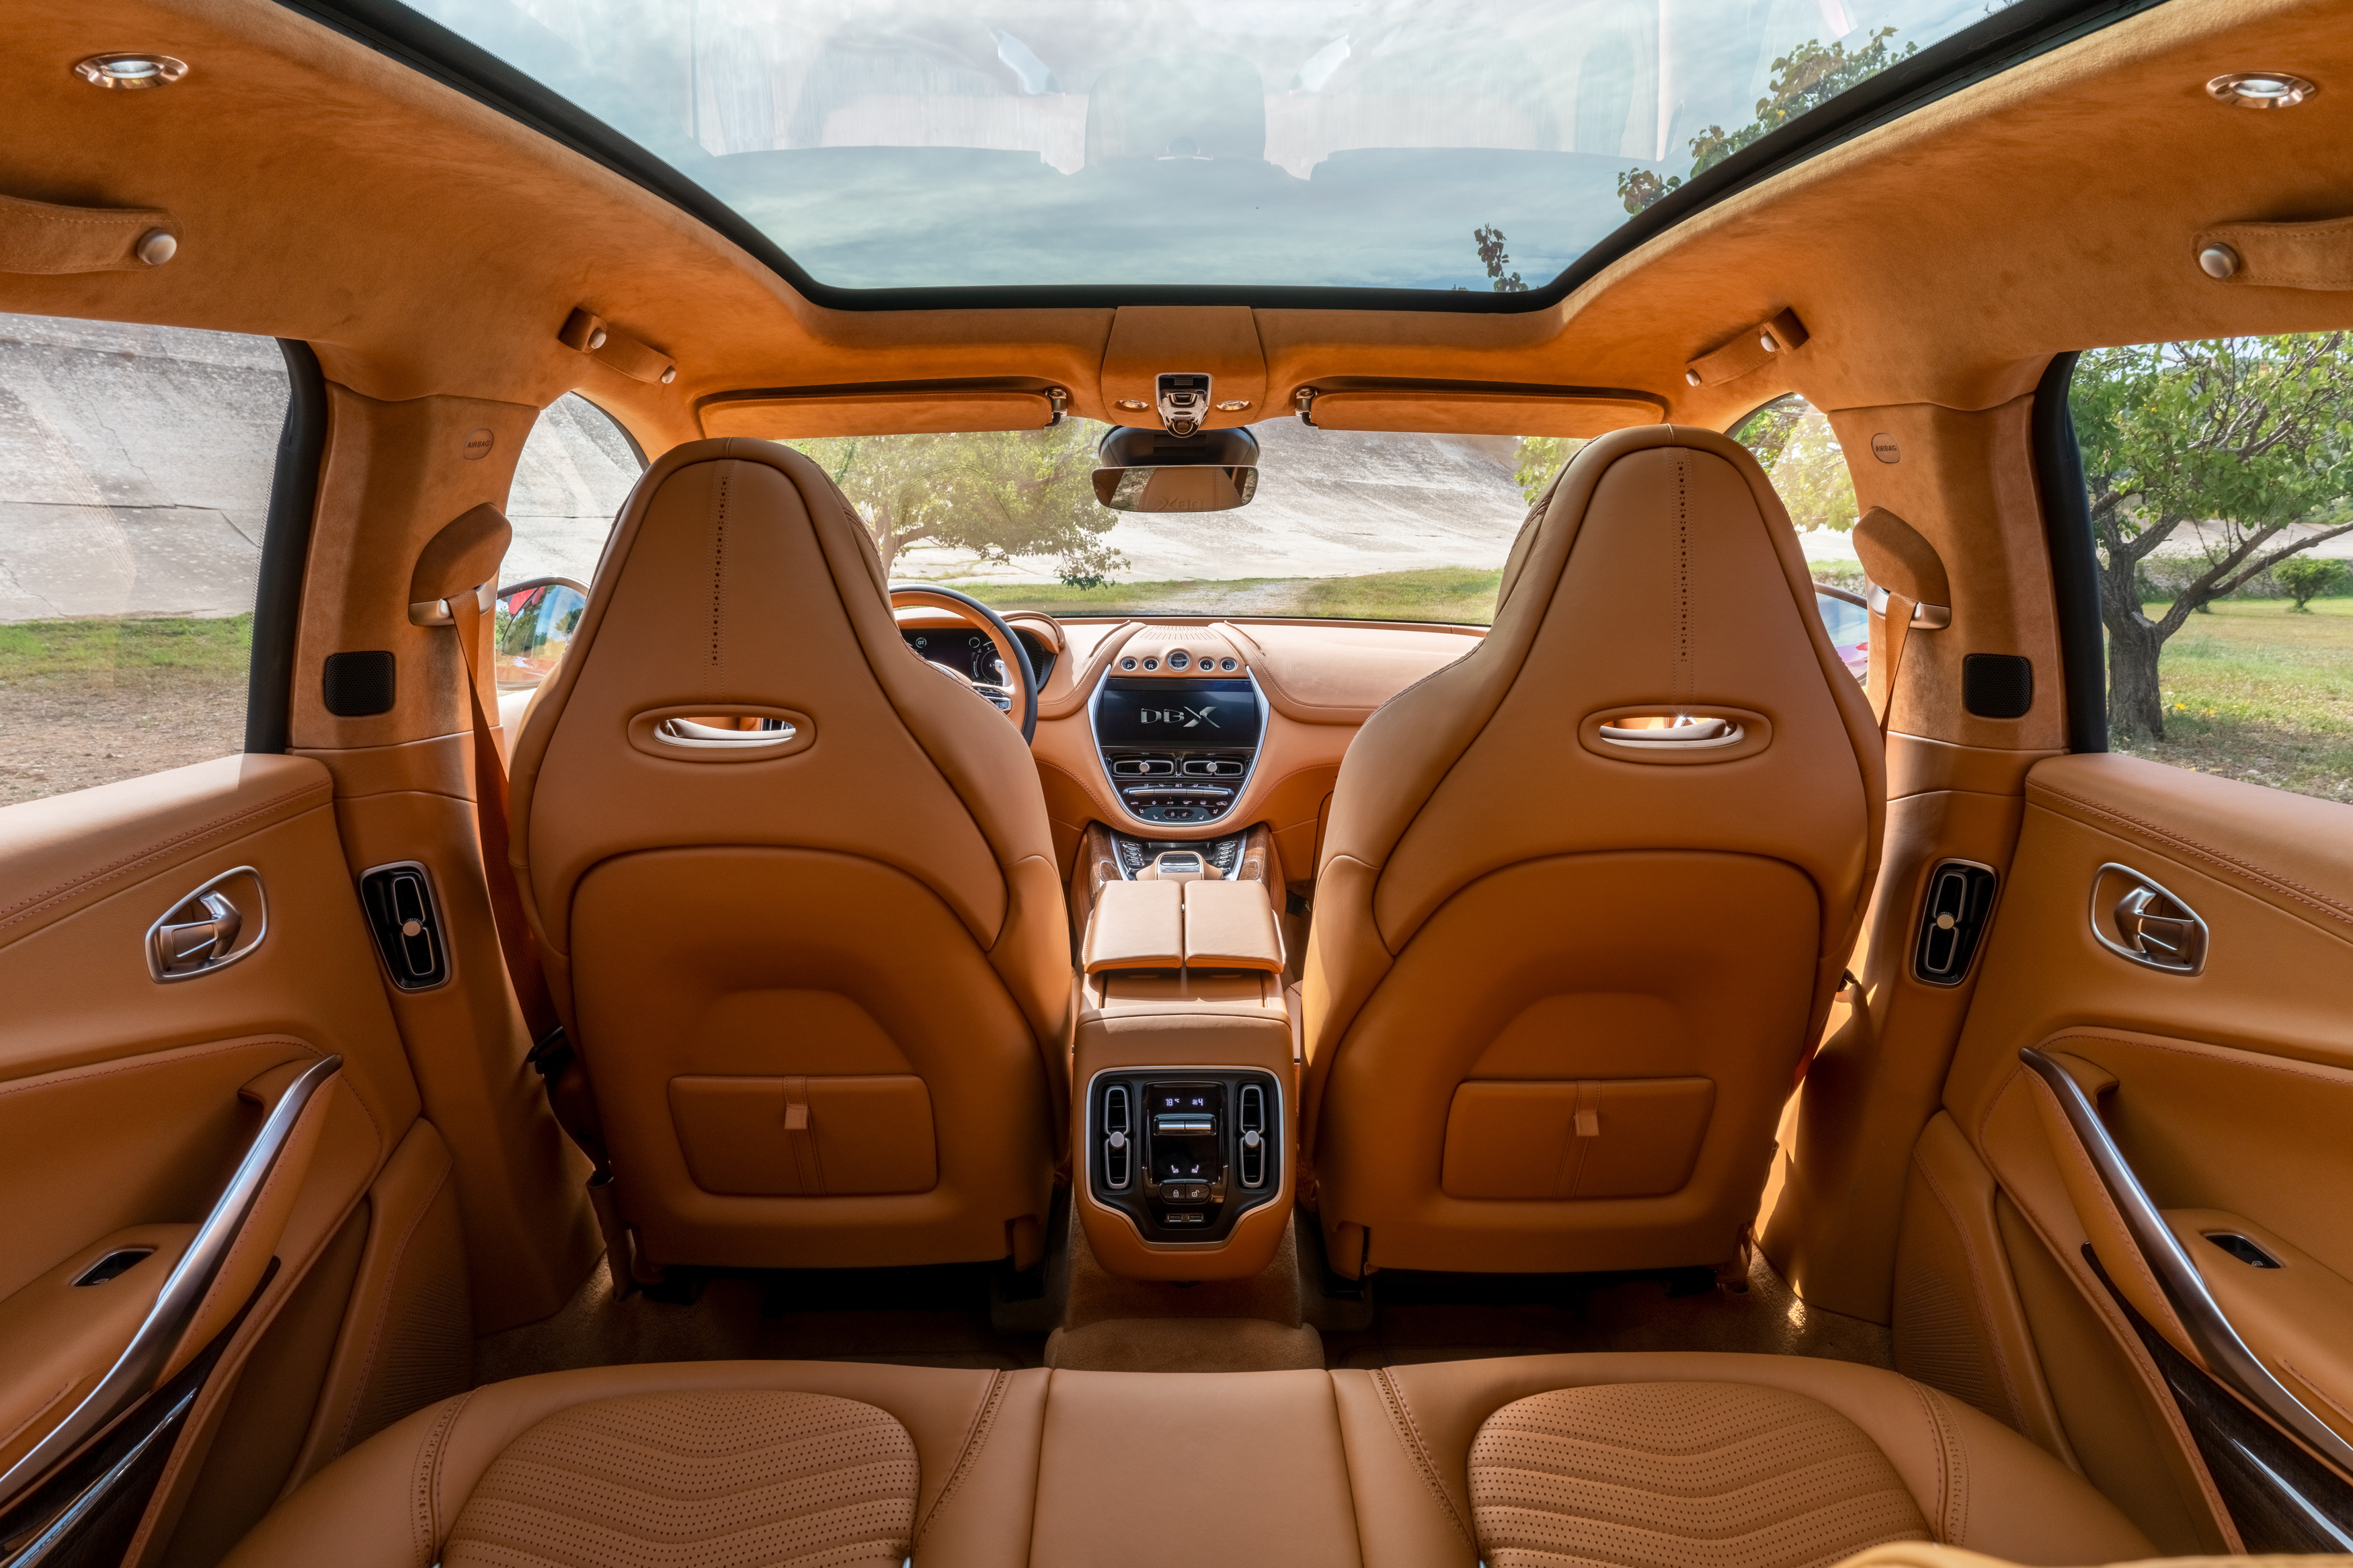 Aston Martin provides look under the glass roof of its $190K DBX SUV